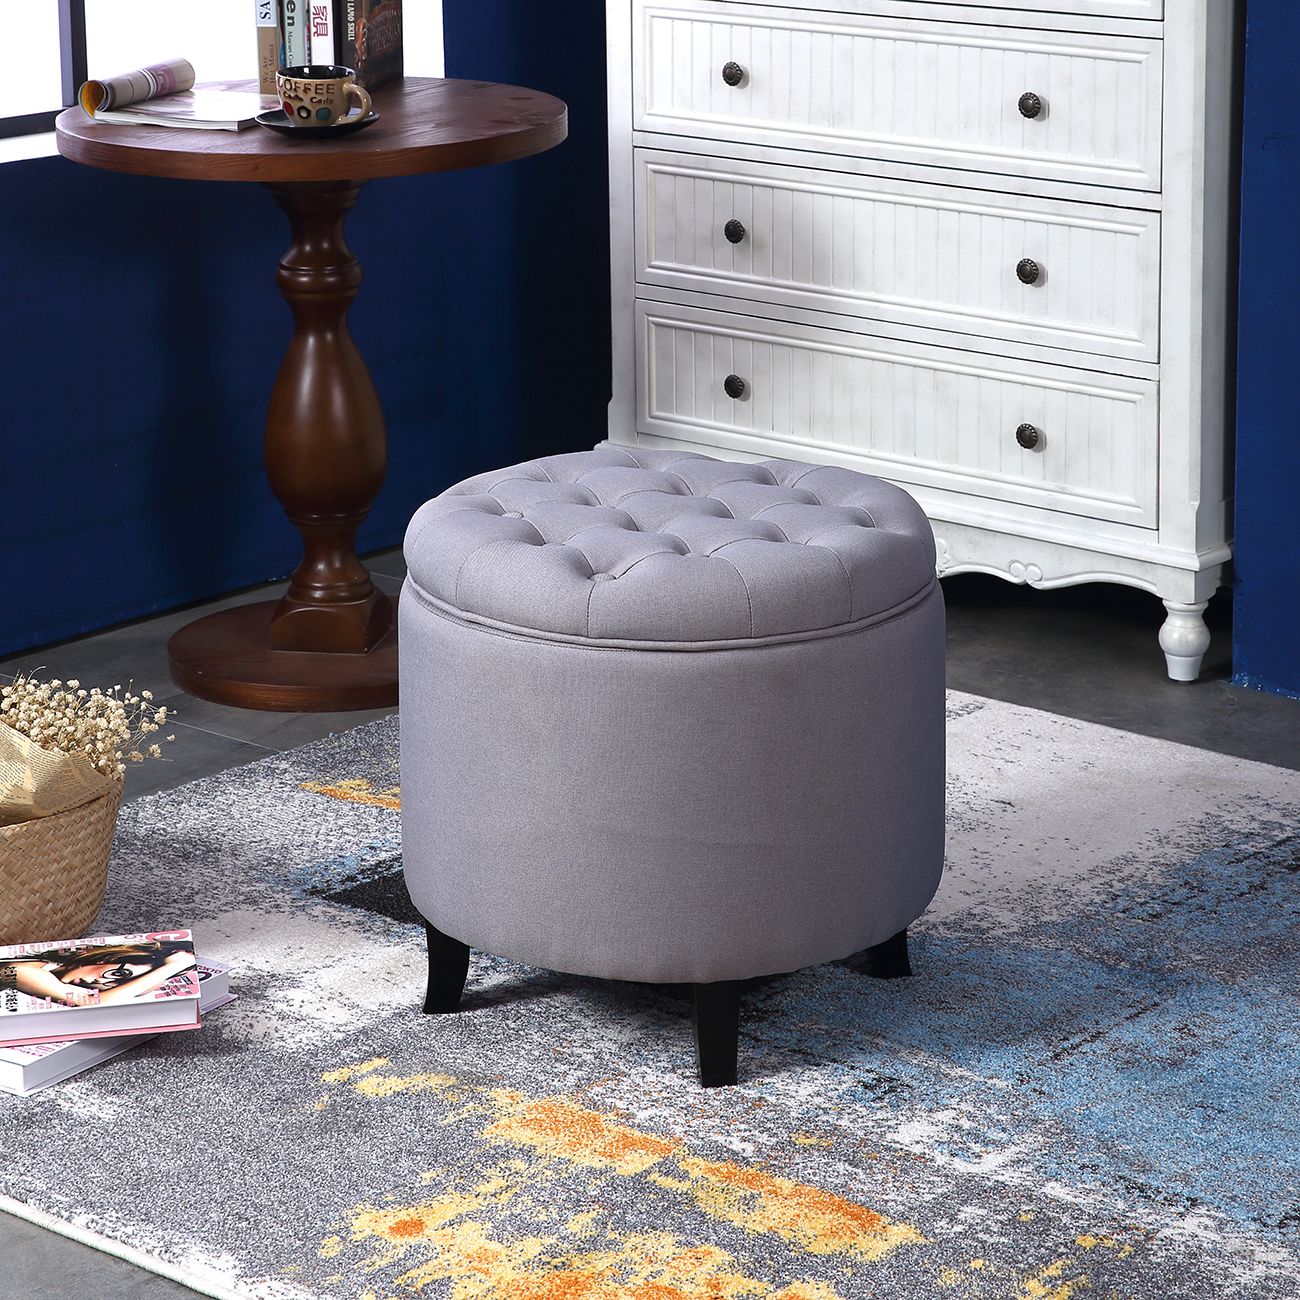 Belleze Nailhead Round Tufted Storage Ottoman Large Footrest Stool Lift Top, Gray by Belleze